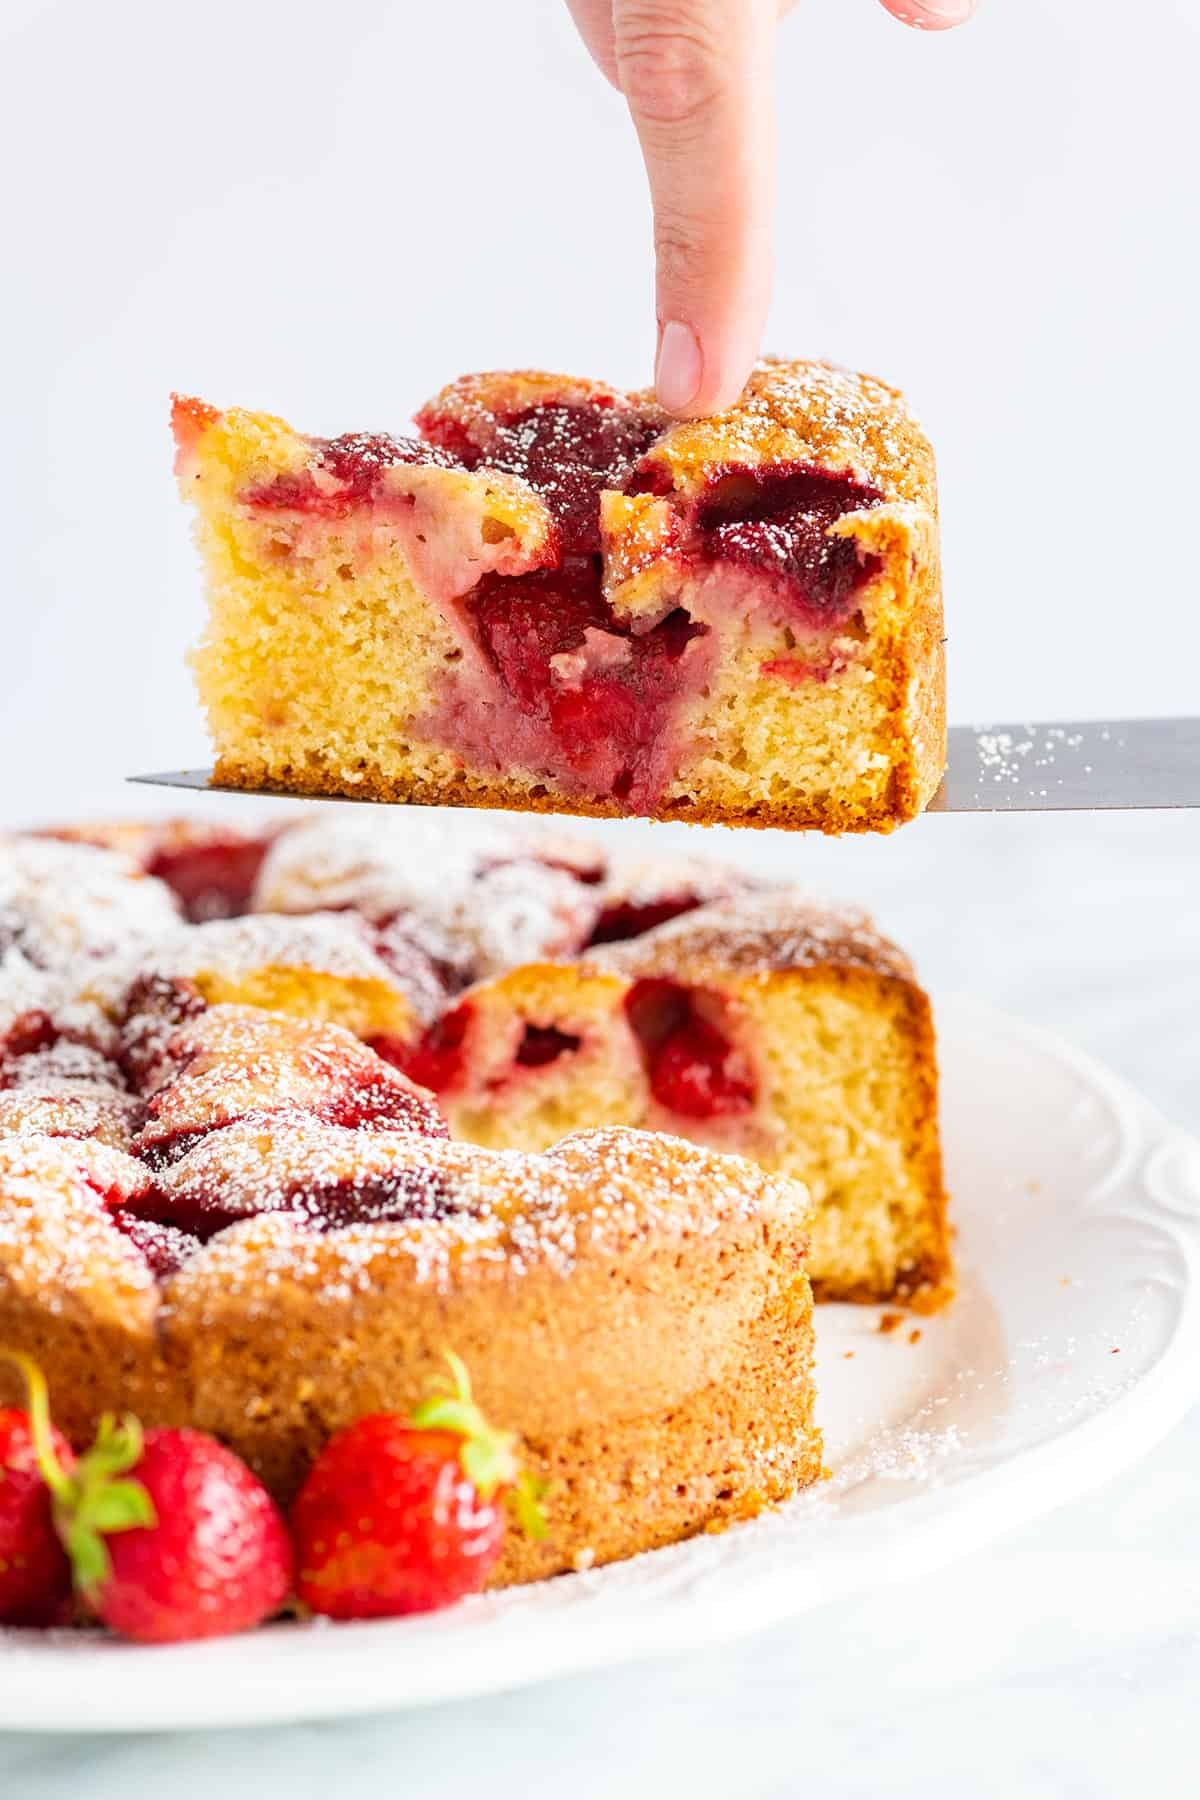 Stunning fresh strawberry cake recipe that's extremely simple to make. The batter is made in one bowl! So easy.